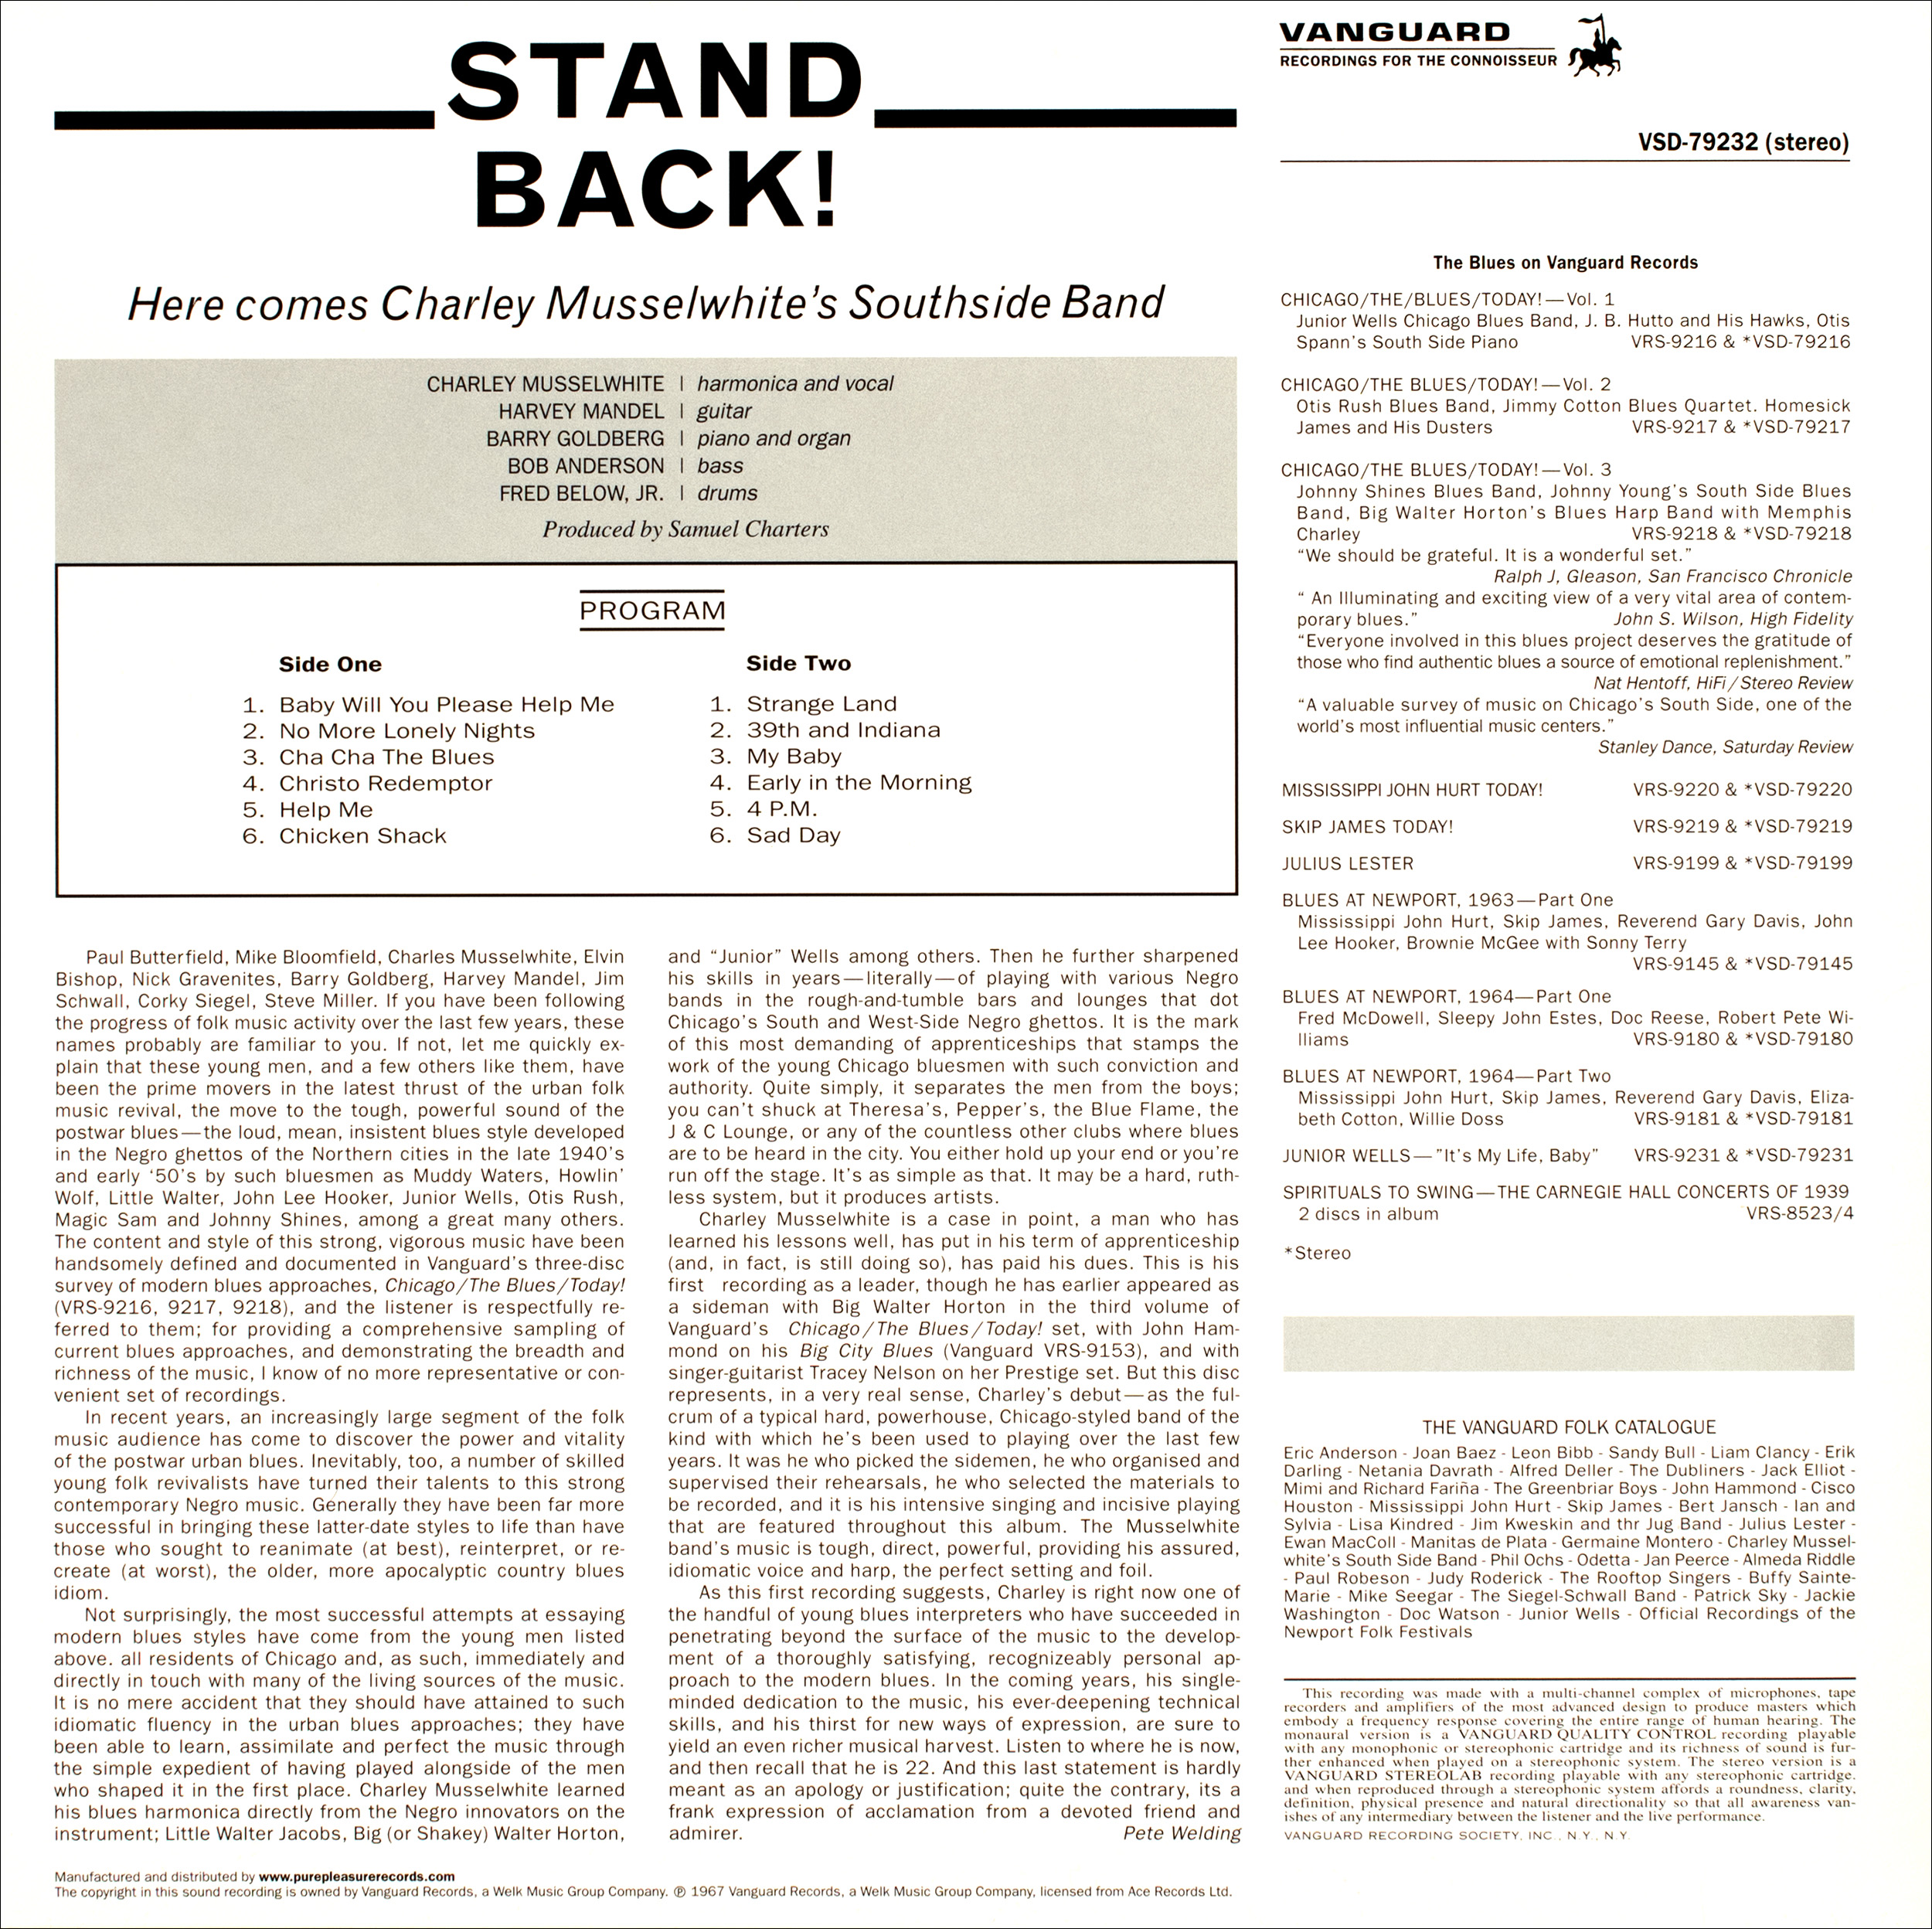 Stand Back Here Comes Charley Musselwhite S Southside Band Lp 2008 Limited Edition Re Release Remastered 180 Gramm Vinyl Von Charlie Musselwhite